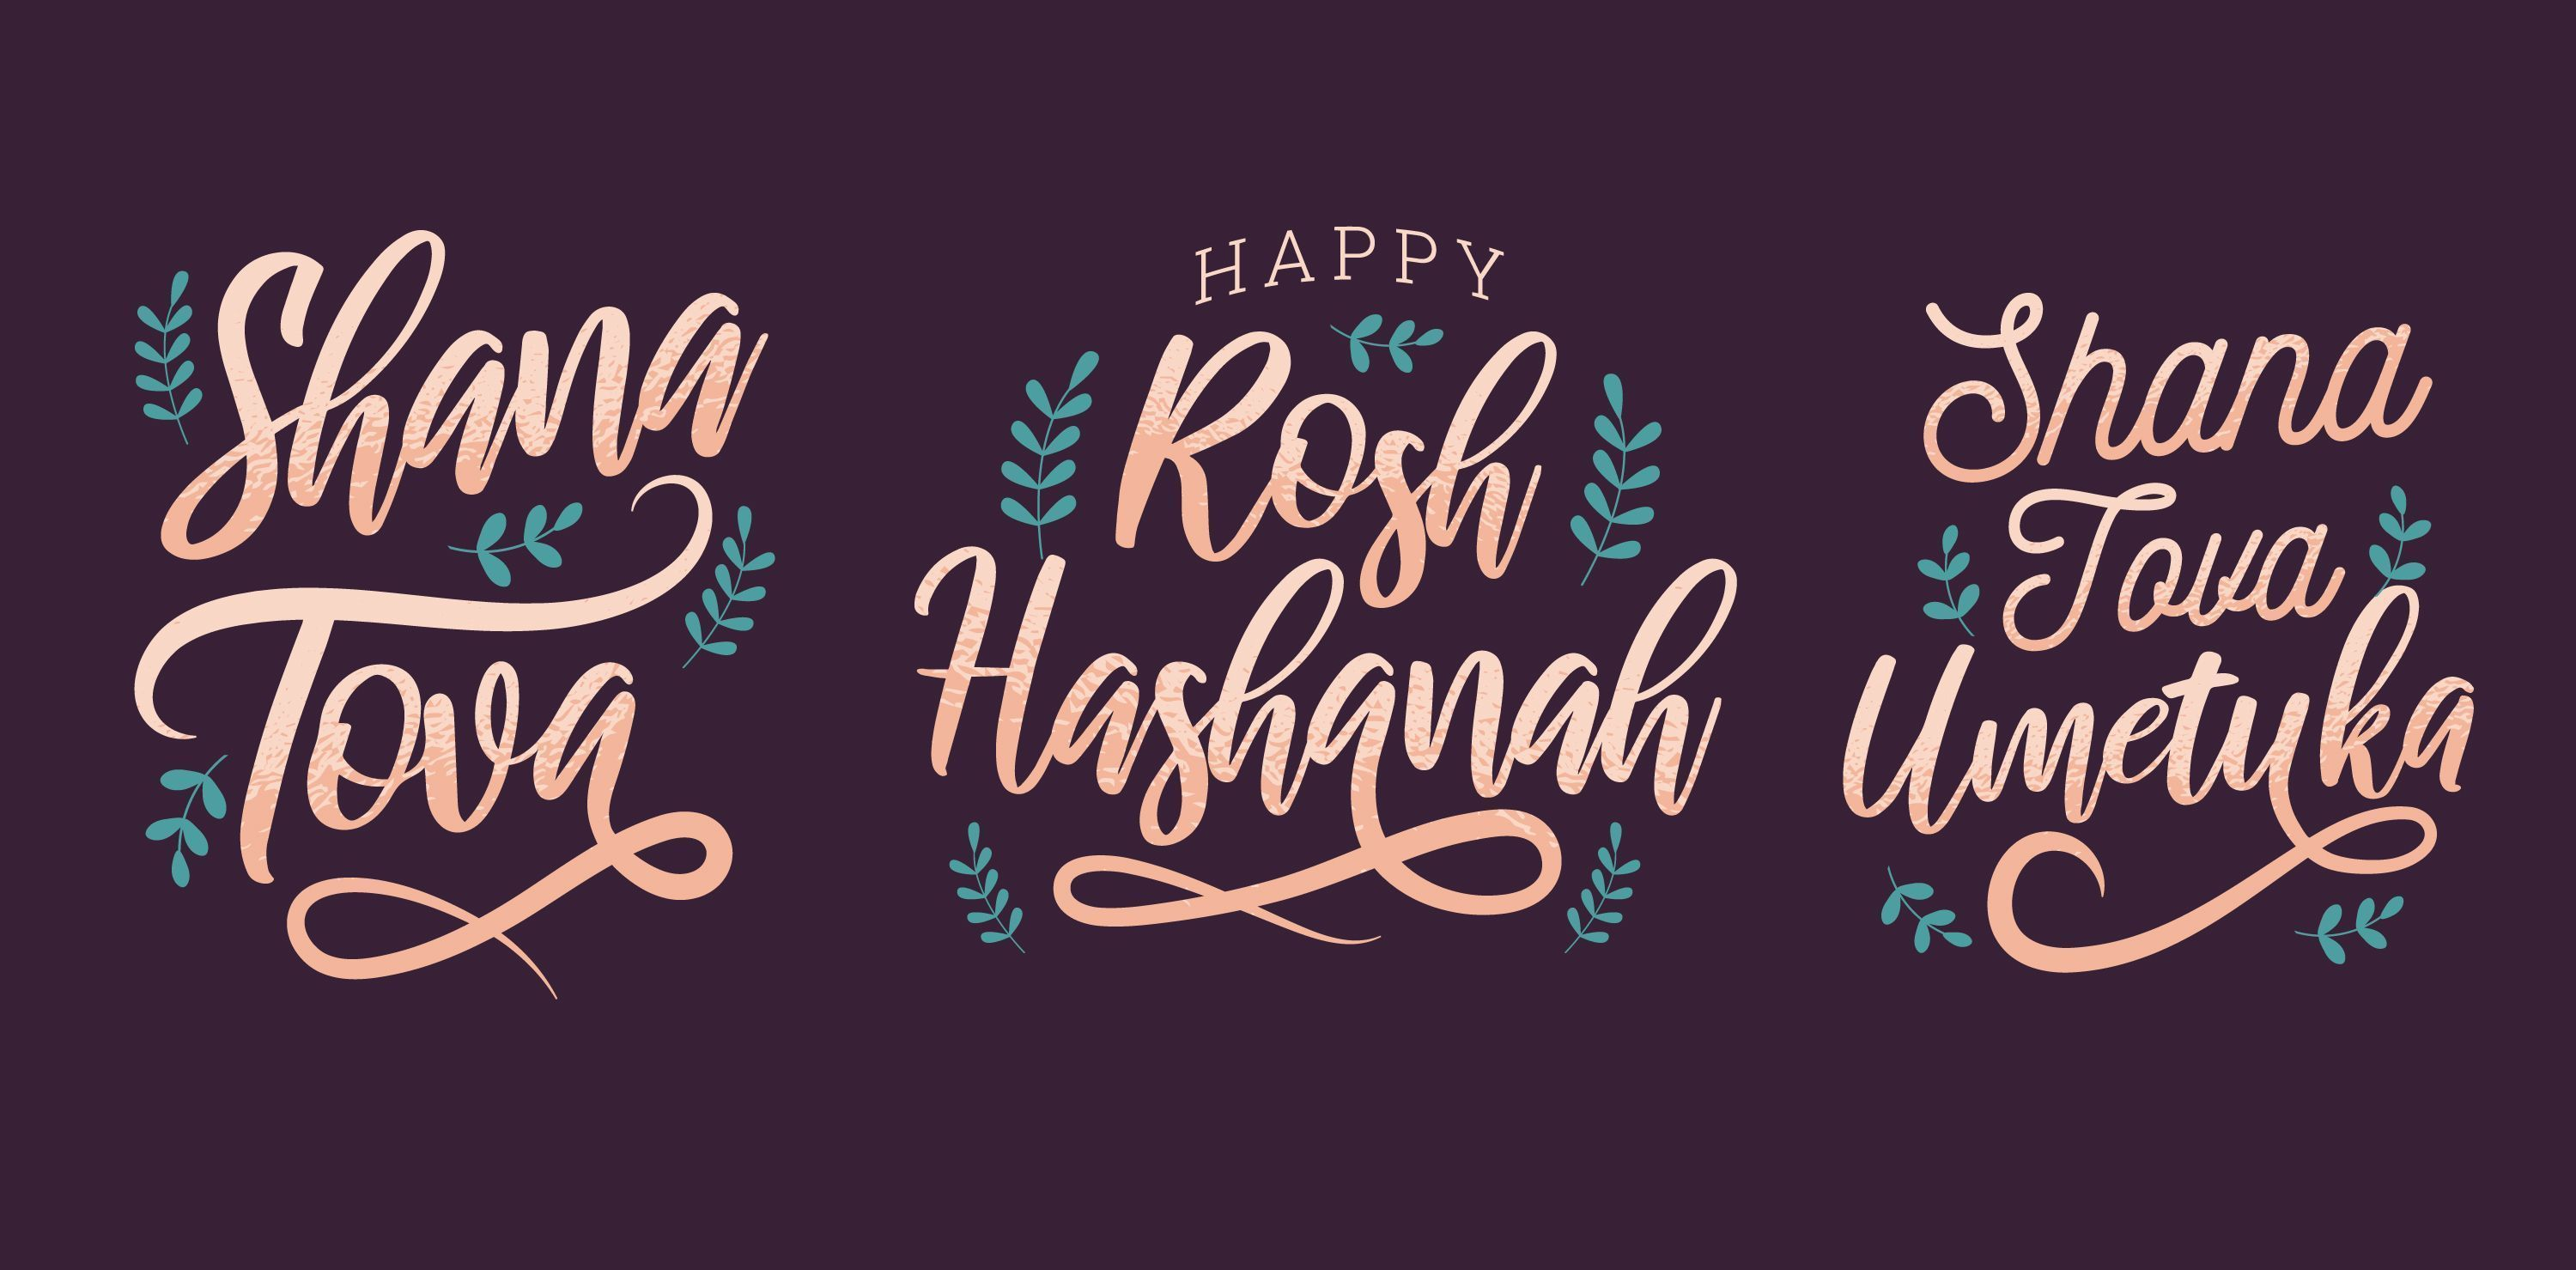 Rosh Hashanah Lettering Set #happyroshhashanah Rosh Hashanah lettering set featuring Shana Tova, Happy Rosh Hashanah and Shana Tova Umetuka quotes. Each one can be used individually, enjoy!  Design available for commercial and promotional use, great for logos, business cards, presentations, motion graphics and more! #happyroshhashanah Rosh Hashanah Lettering Set #happyroshhashanah Rosh Hashanah lettering set featuring Shana Tova, Happy Rosh Hashanah and Shana Tova Umetuka quotes. Each one can be #shanatovacards